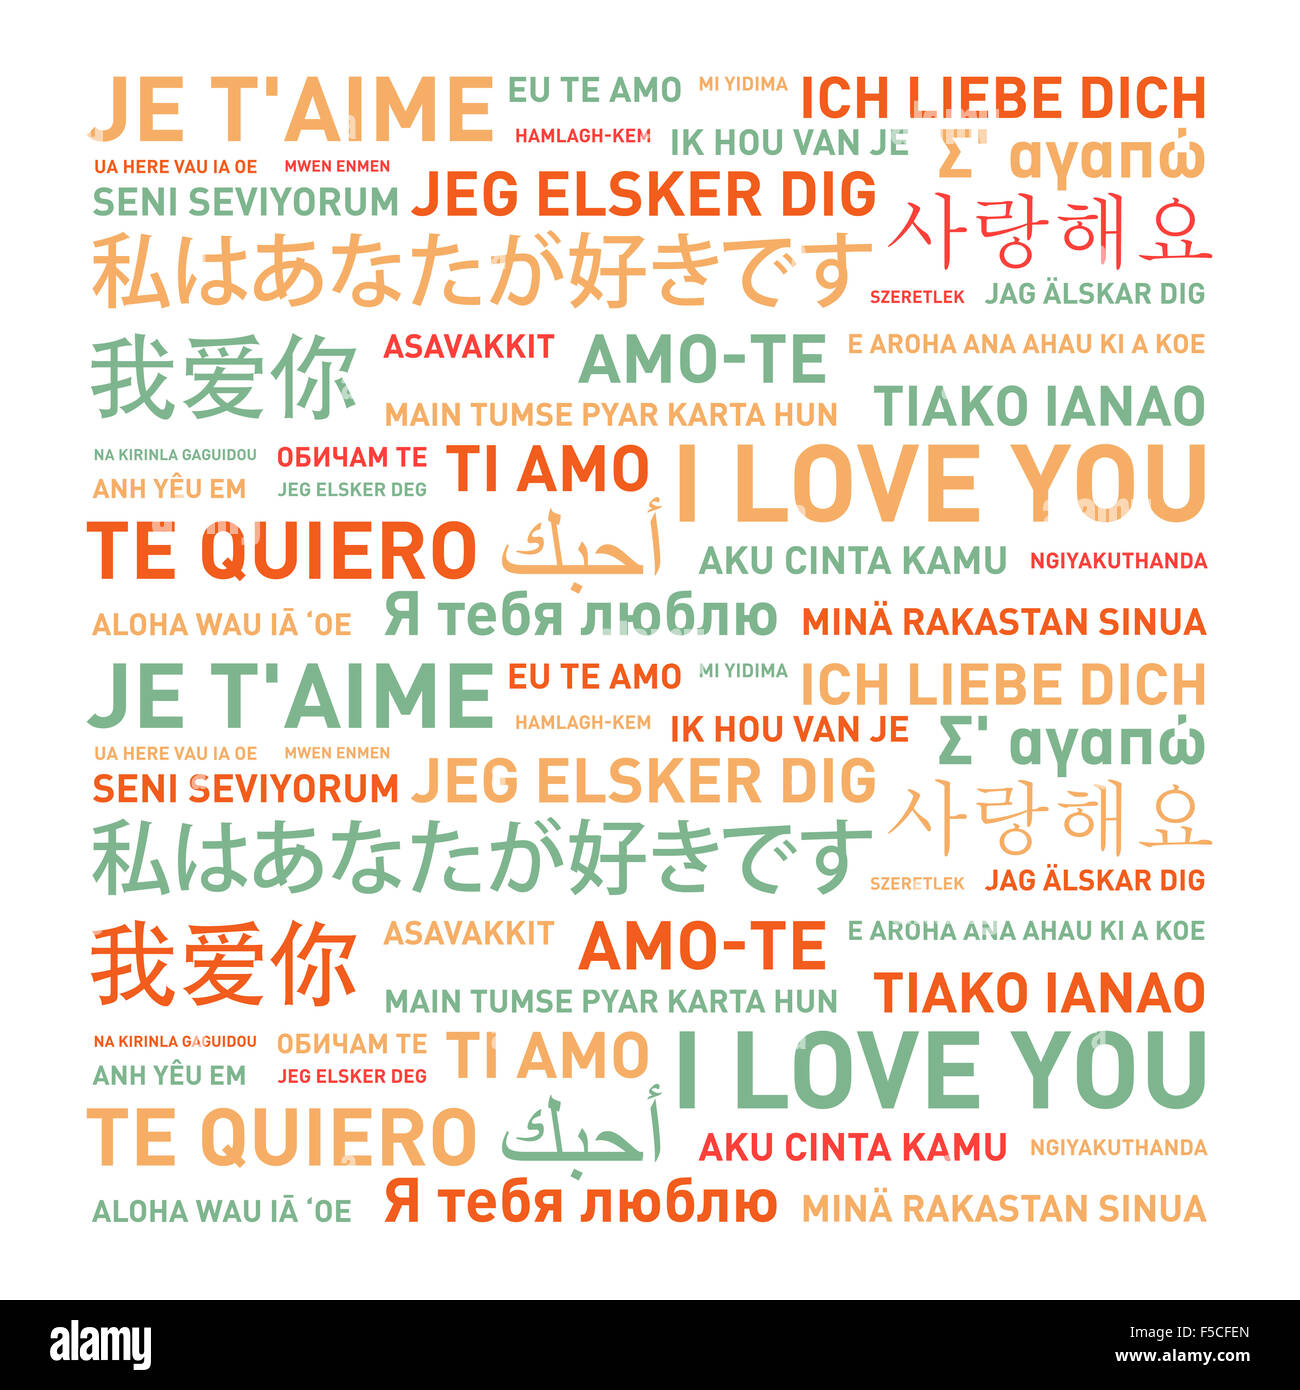 I Love You Card Translated In Different World Languages Stock Image